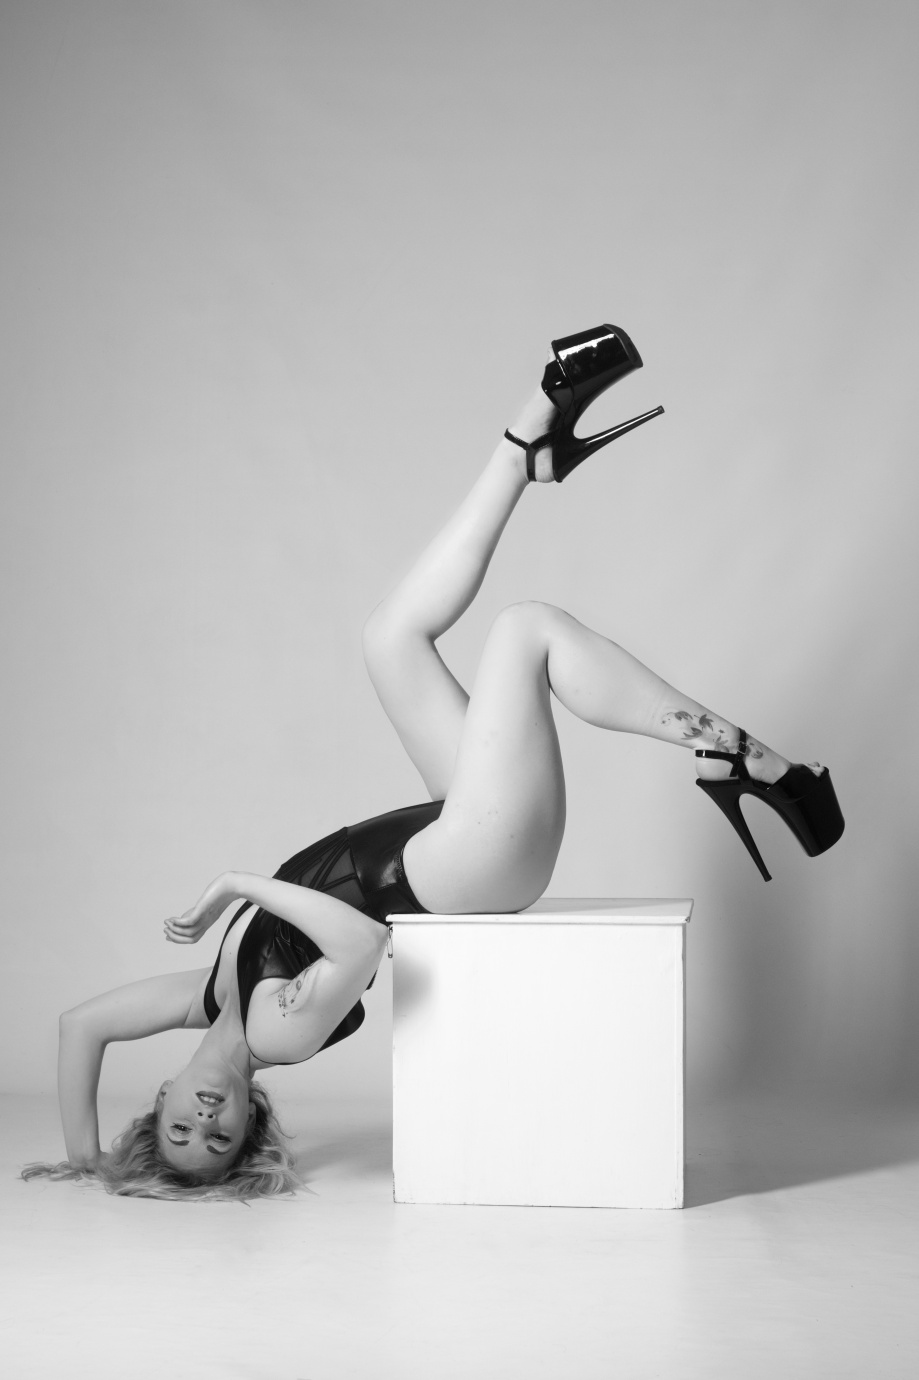 cork, ireland, glamour photography, die baroness, jenny schmiedel, black and white, studio shoot, boudoir, hair, pole performer, blonde, legs